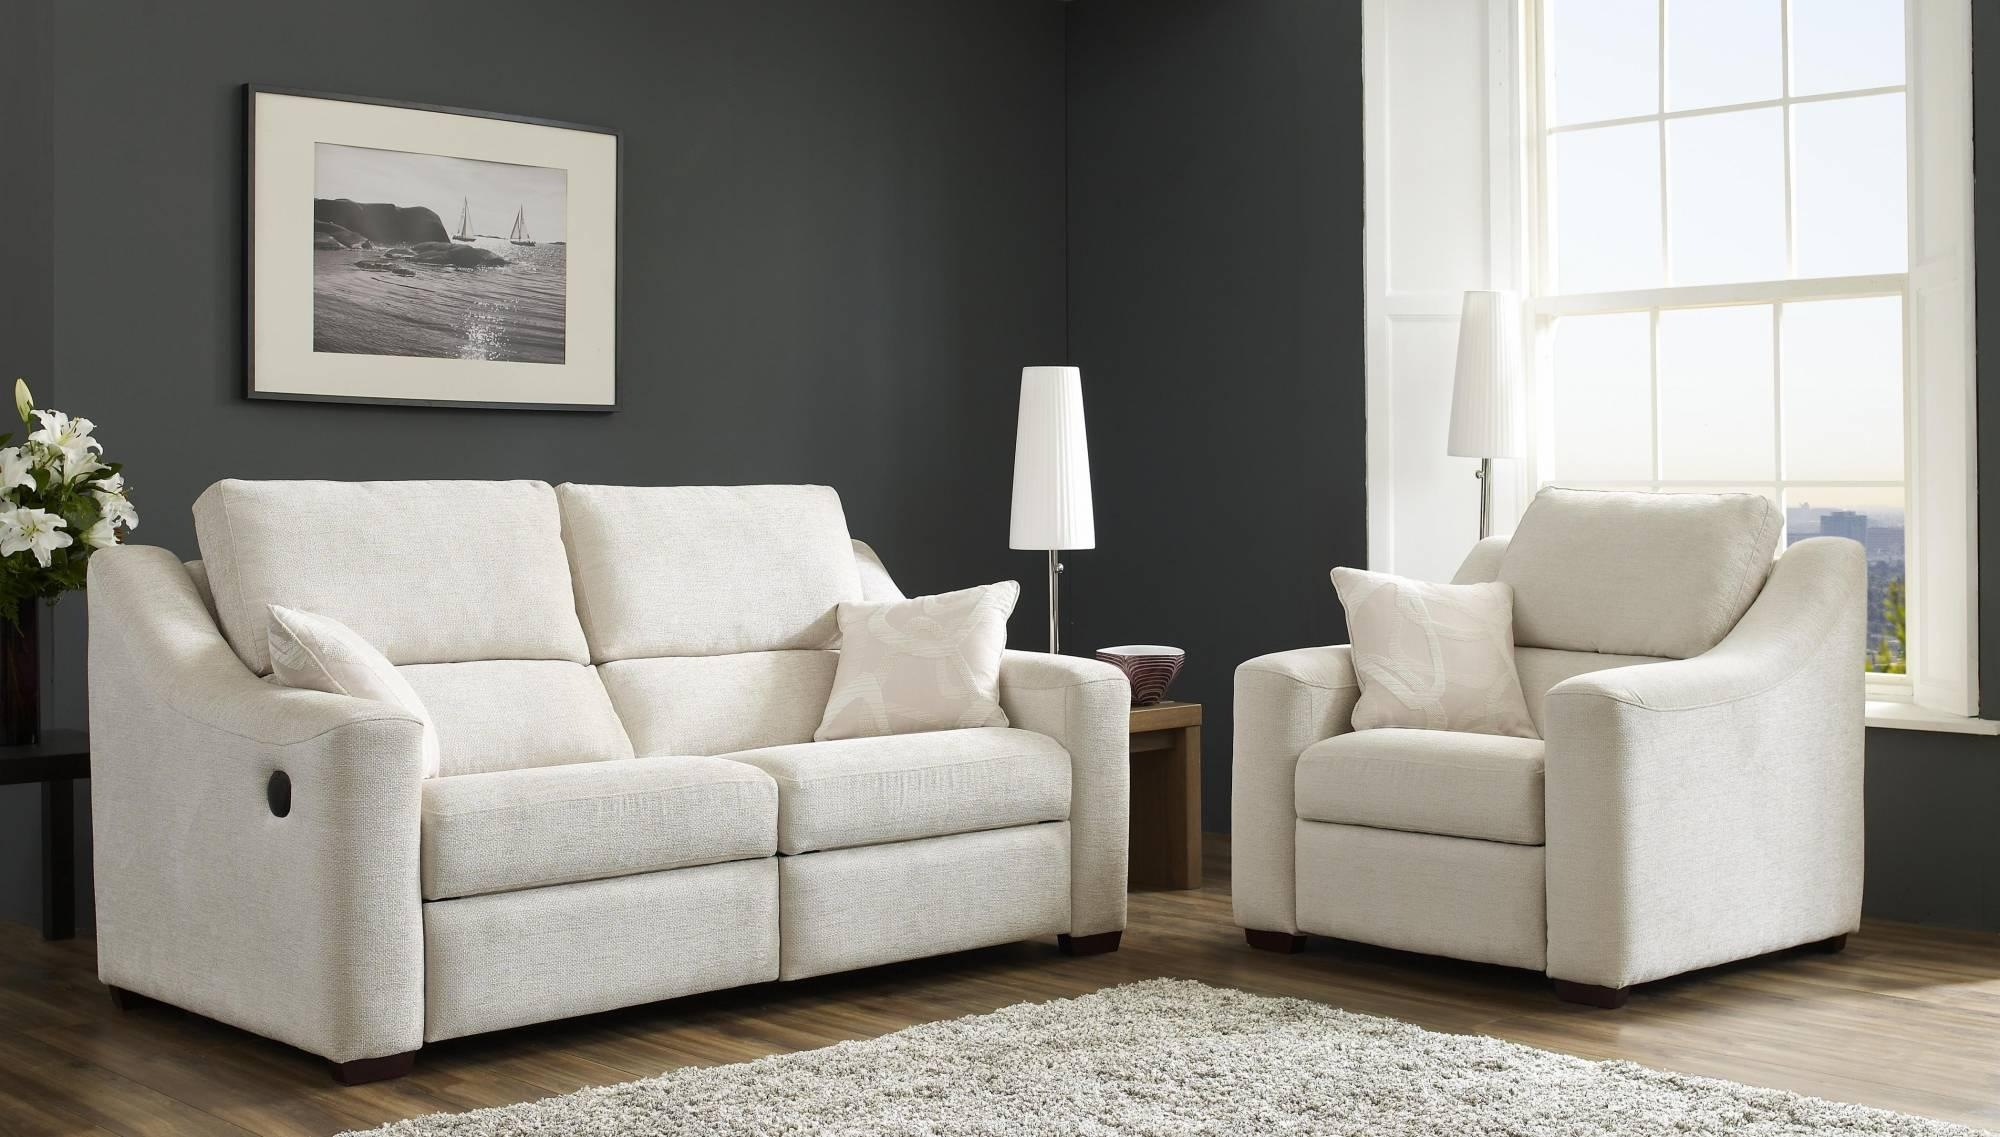 reclining two seat sofa orange chair 20 collection of 2 recliner sofas ideas